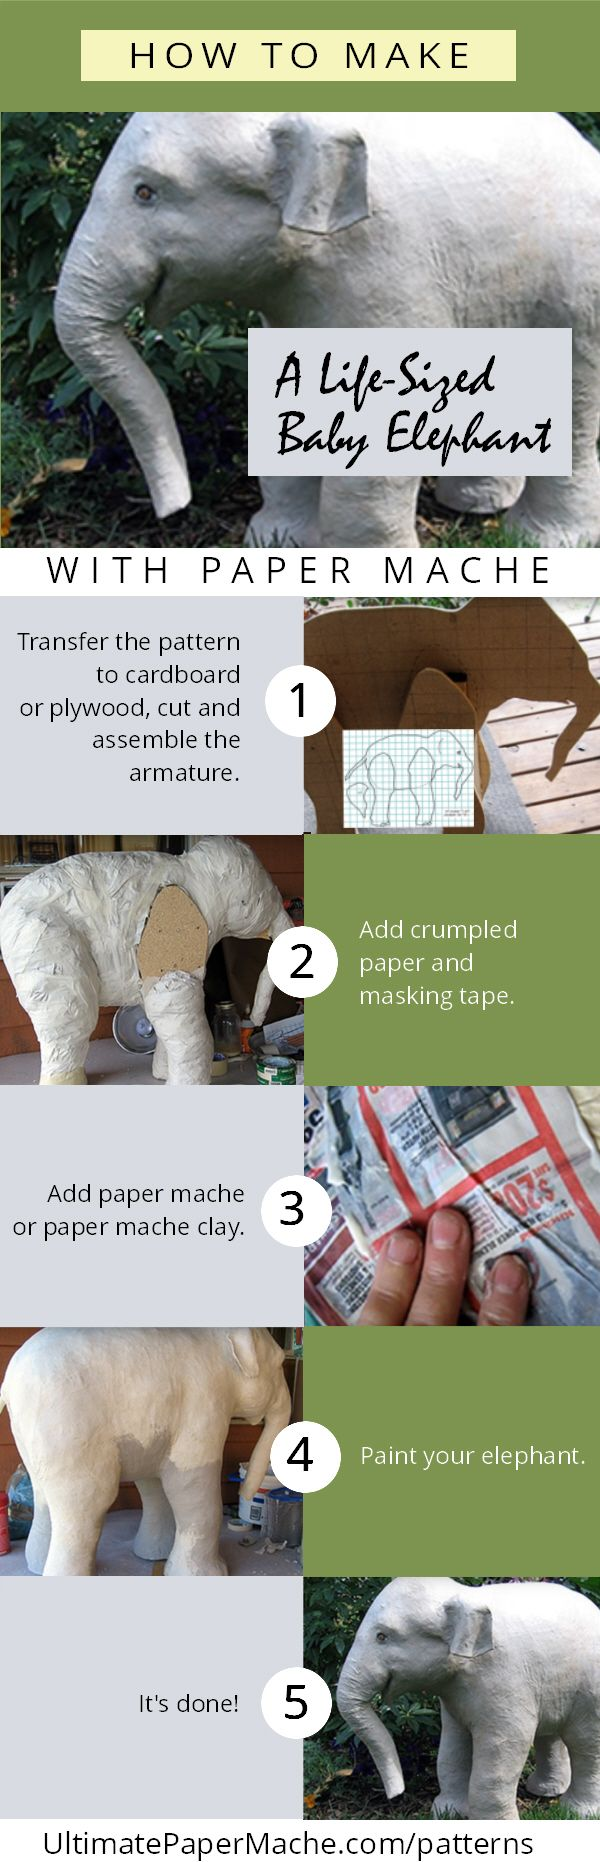 Make an adorable life-sized paper mache Indian elephant with this pattern, designed by Jonni Good. This is a big project, but it's a lot easier than it looks. Thousands of people have downloaded the pattern and successfully made their own elephants, and it's still the most popular pattern on the site. http://www.UltimatePaperMache.com/patterns